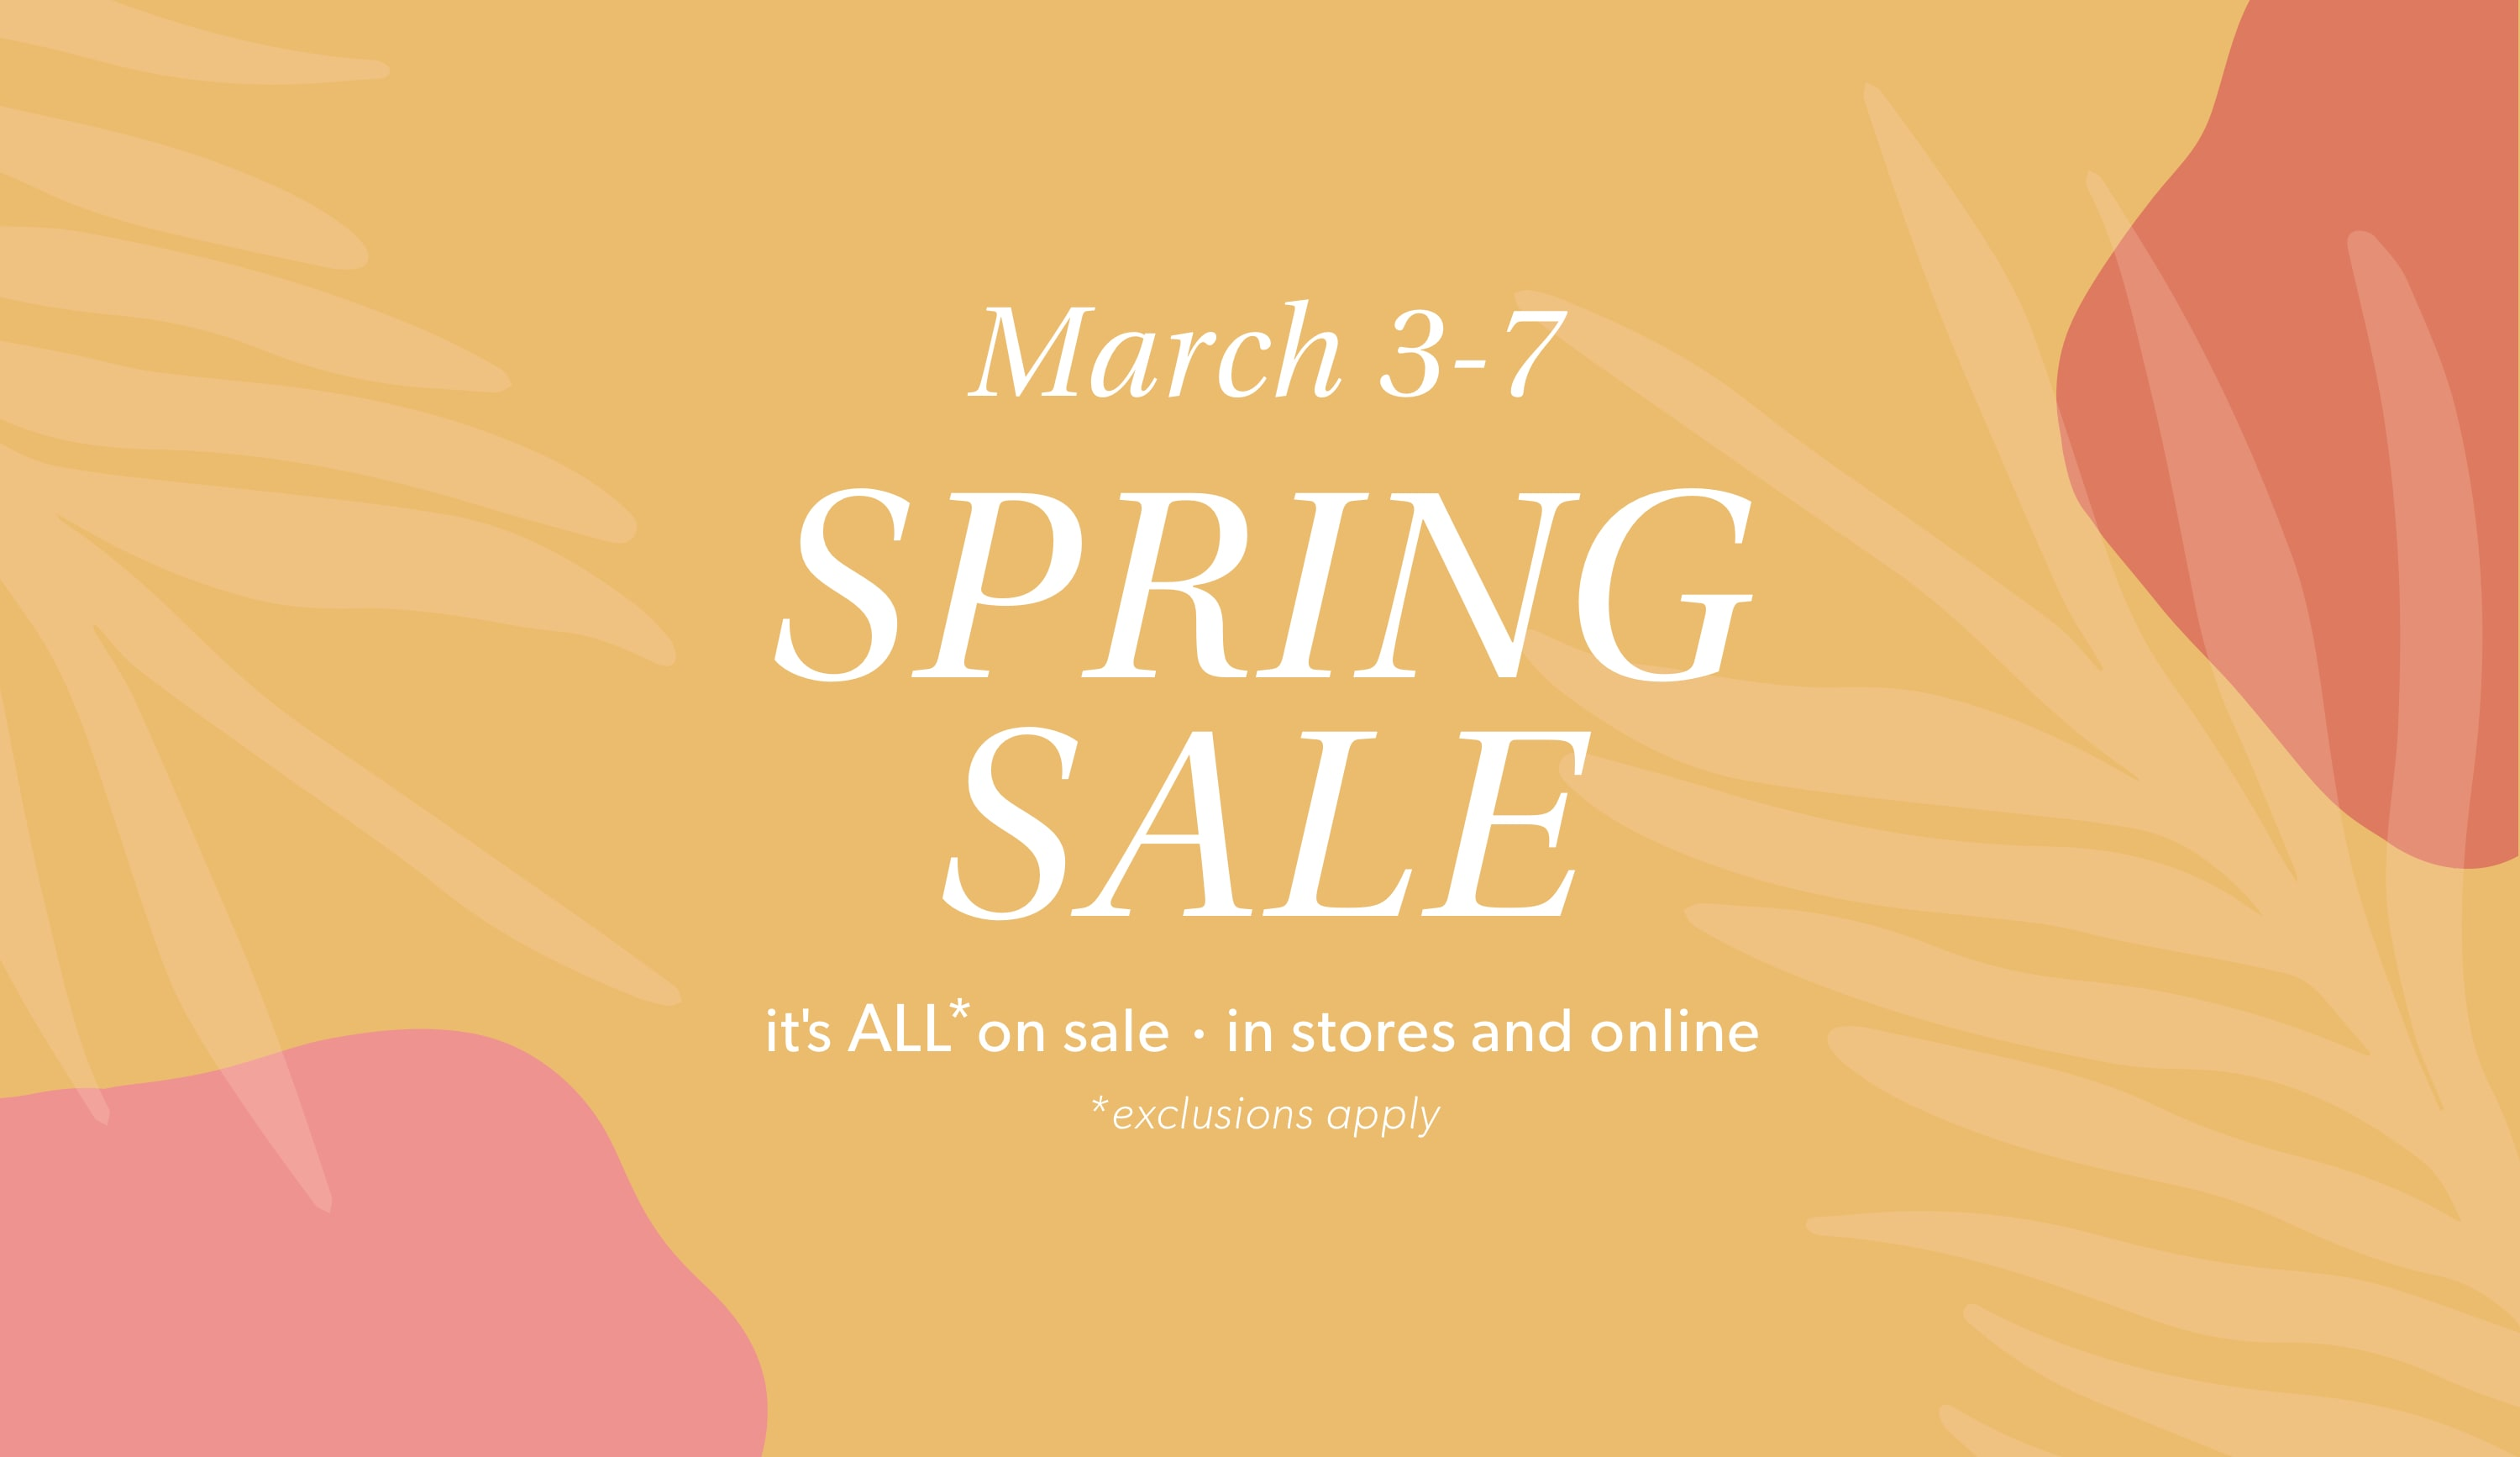 Spring Sale at EVEREVE March 3-7